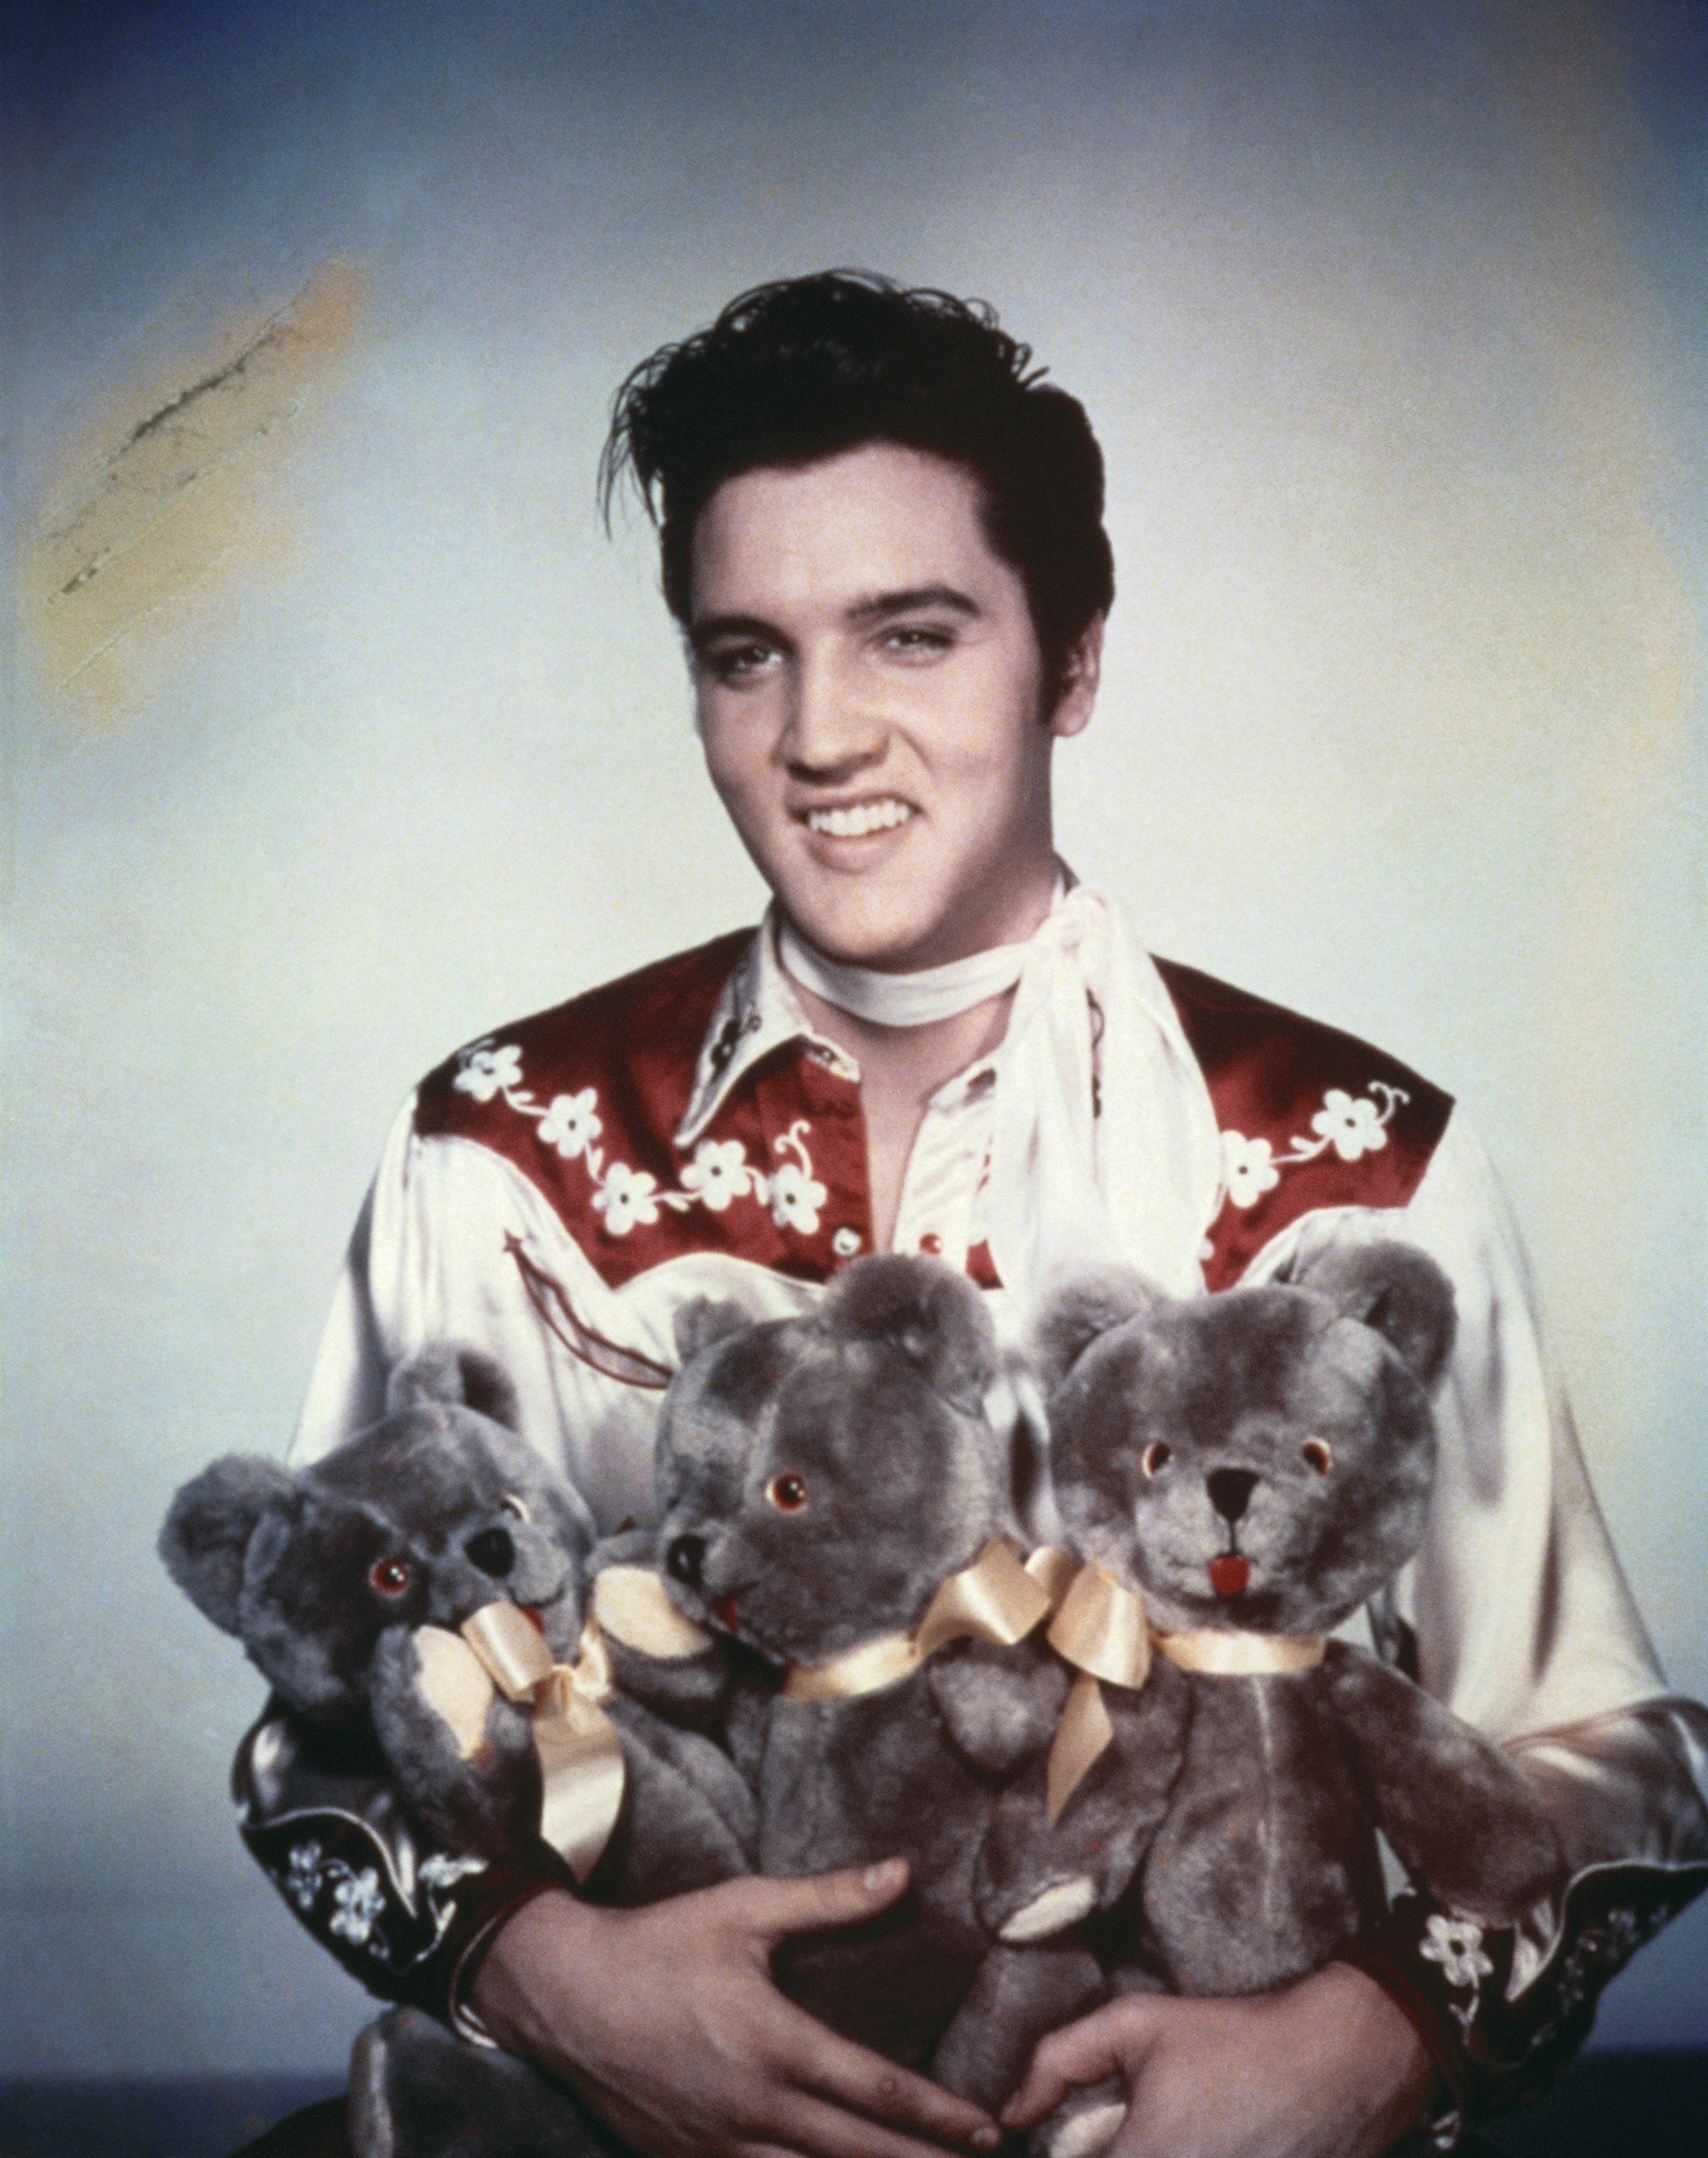 Loving You : 1957, Elvis poses for a portrait to publicize his movie.